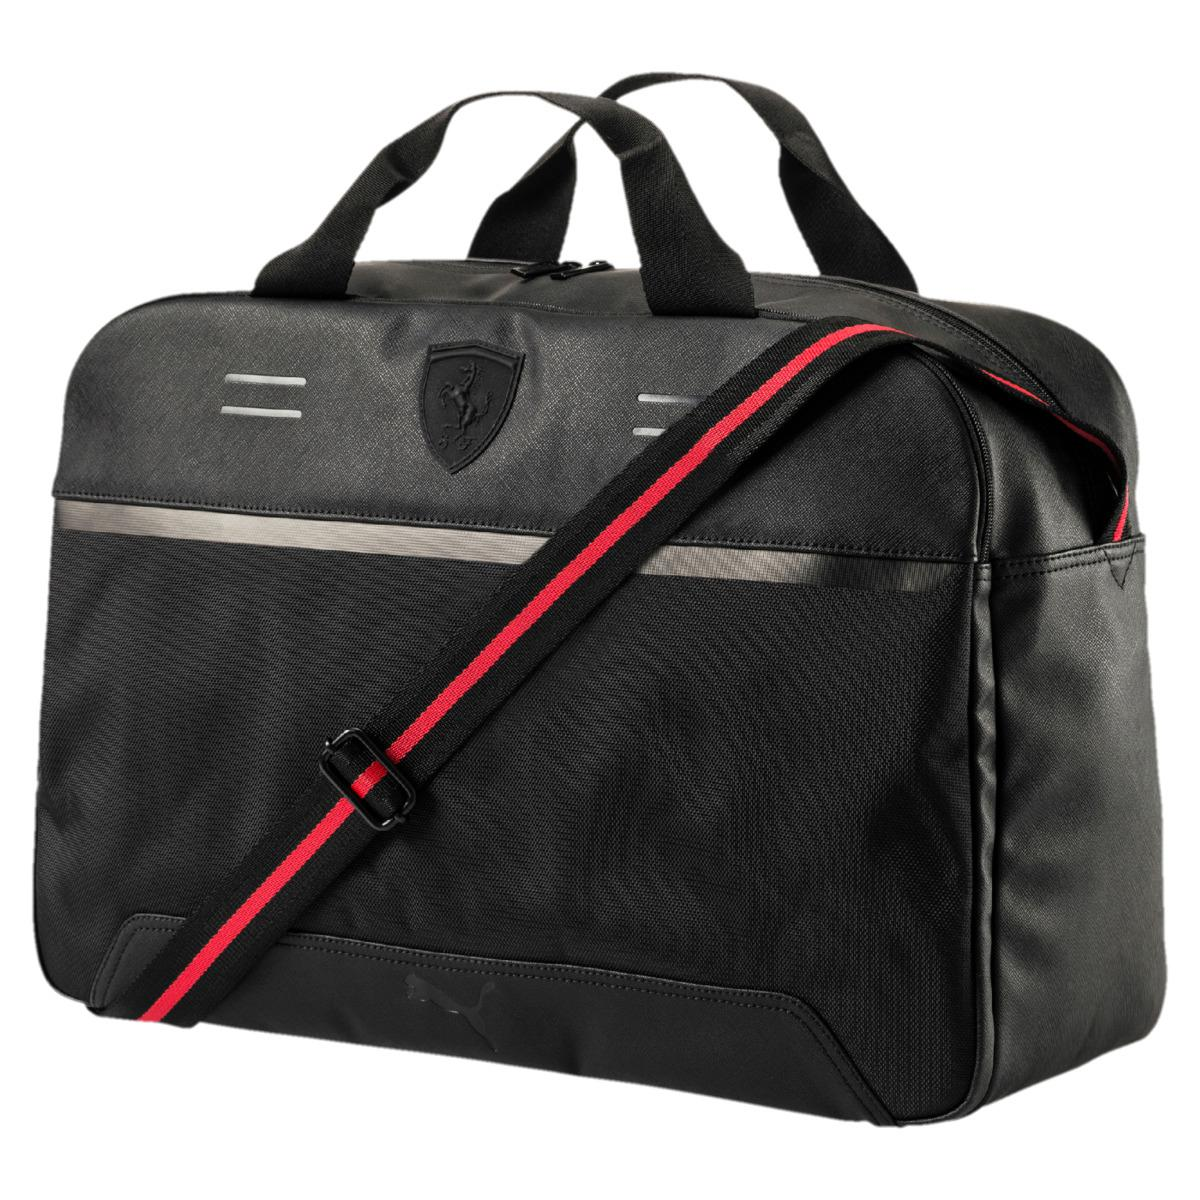 499d368a237a Puma Ferrari Ls Weekender Sports Bag in Black for Men - Lyst